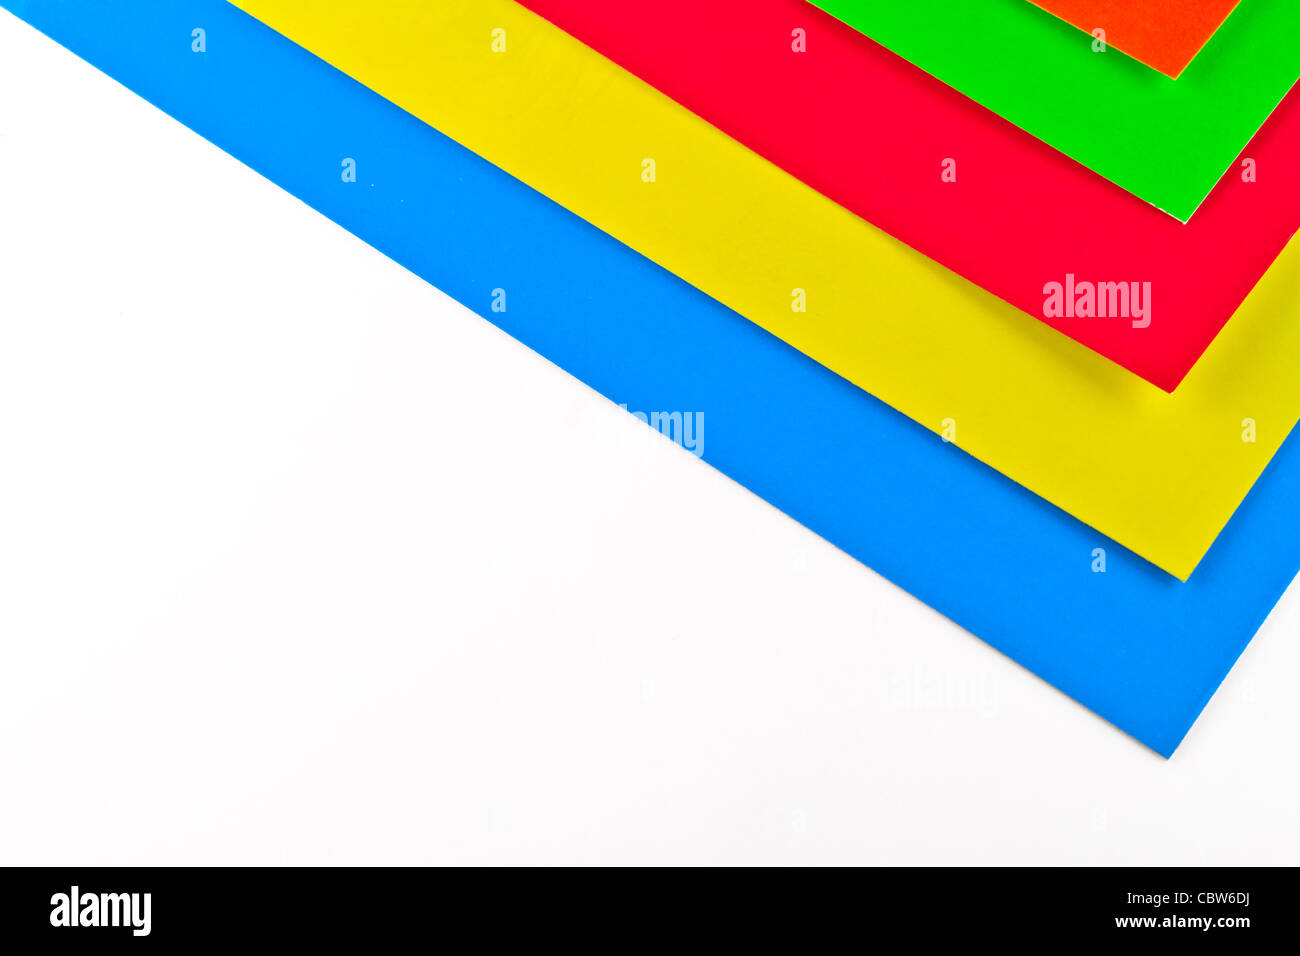 Photo Of Sheets Of A Color Paper Stock Photo 41735838 Alamy